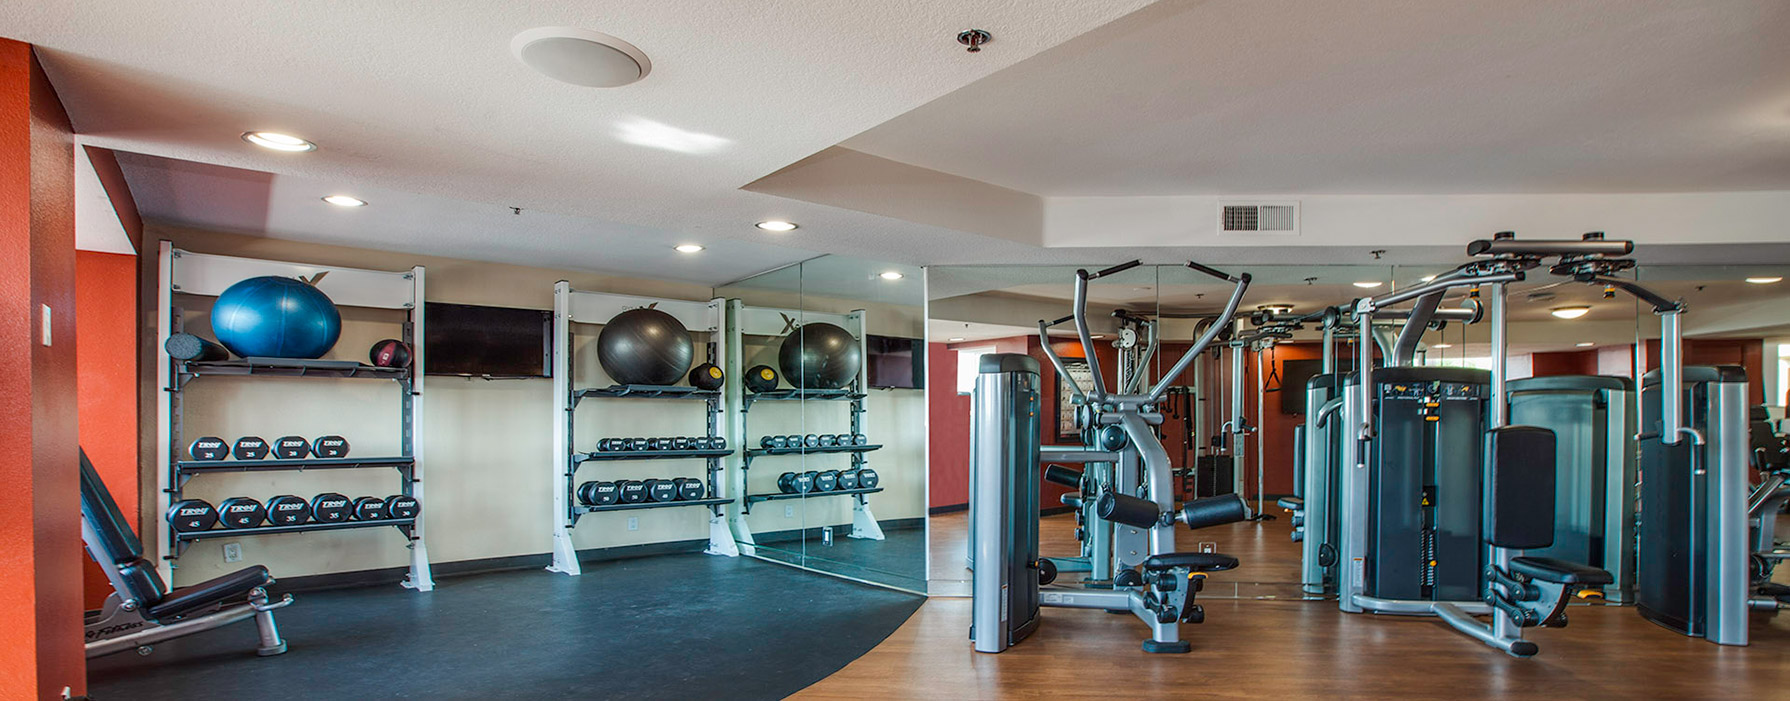 Broadcast Center - Los Angeles, CA - Fitness Center